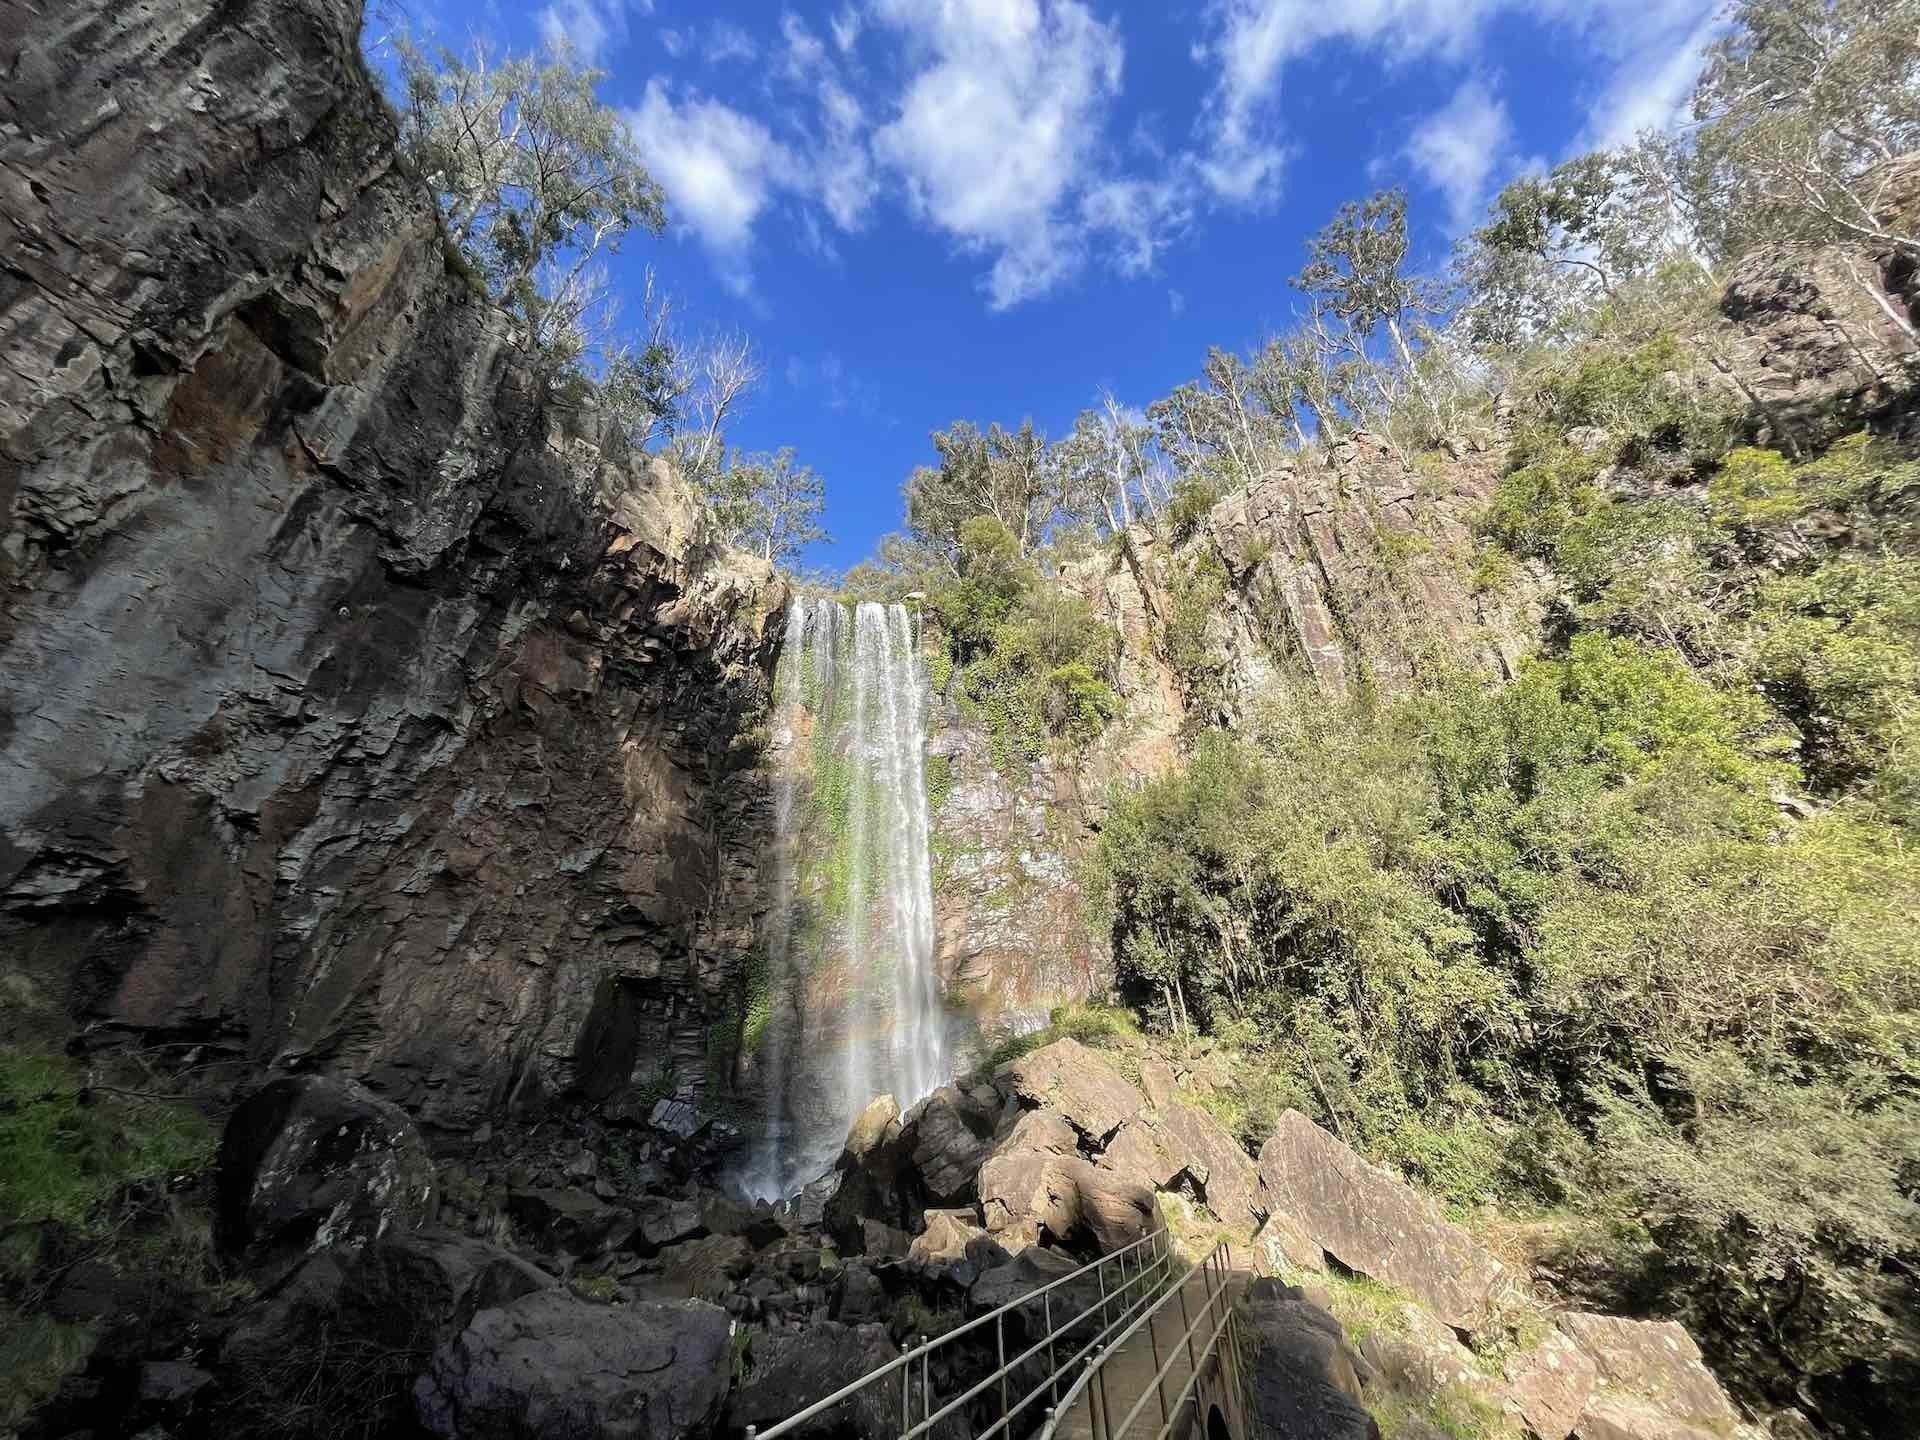 Queen Mary Falls is Waterfall Royalty - Renee Summers, Waterfalls, Queen Mary Falls